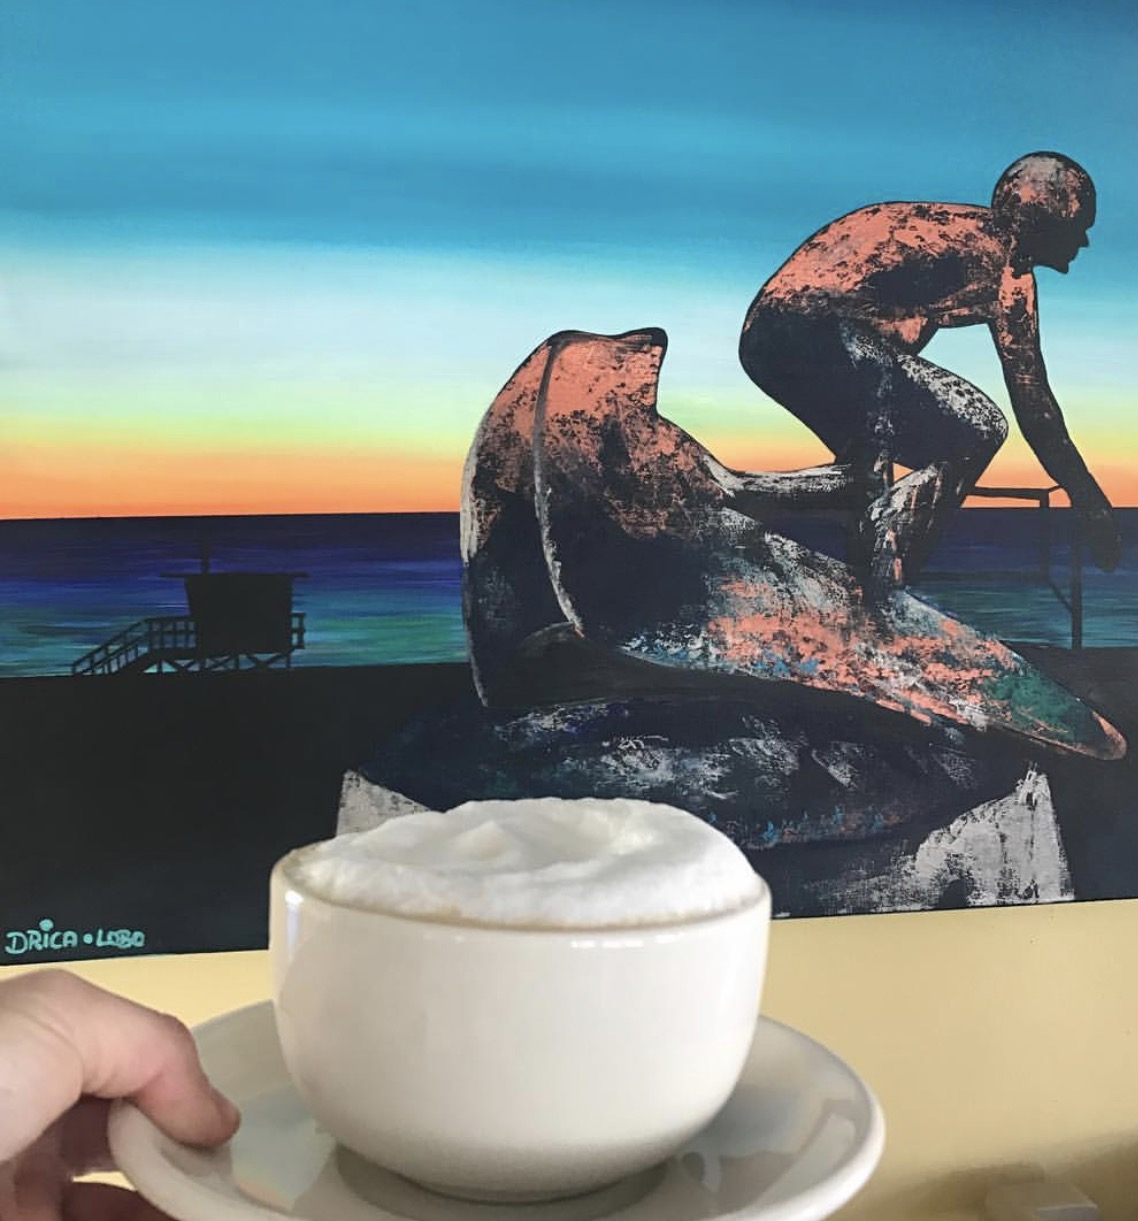 Coffee and art with Drica Lobo at Java Man in Hermosa Beach